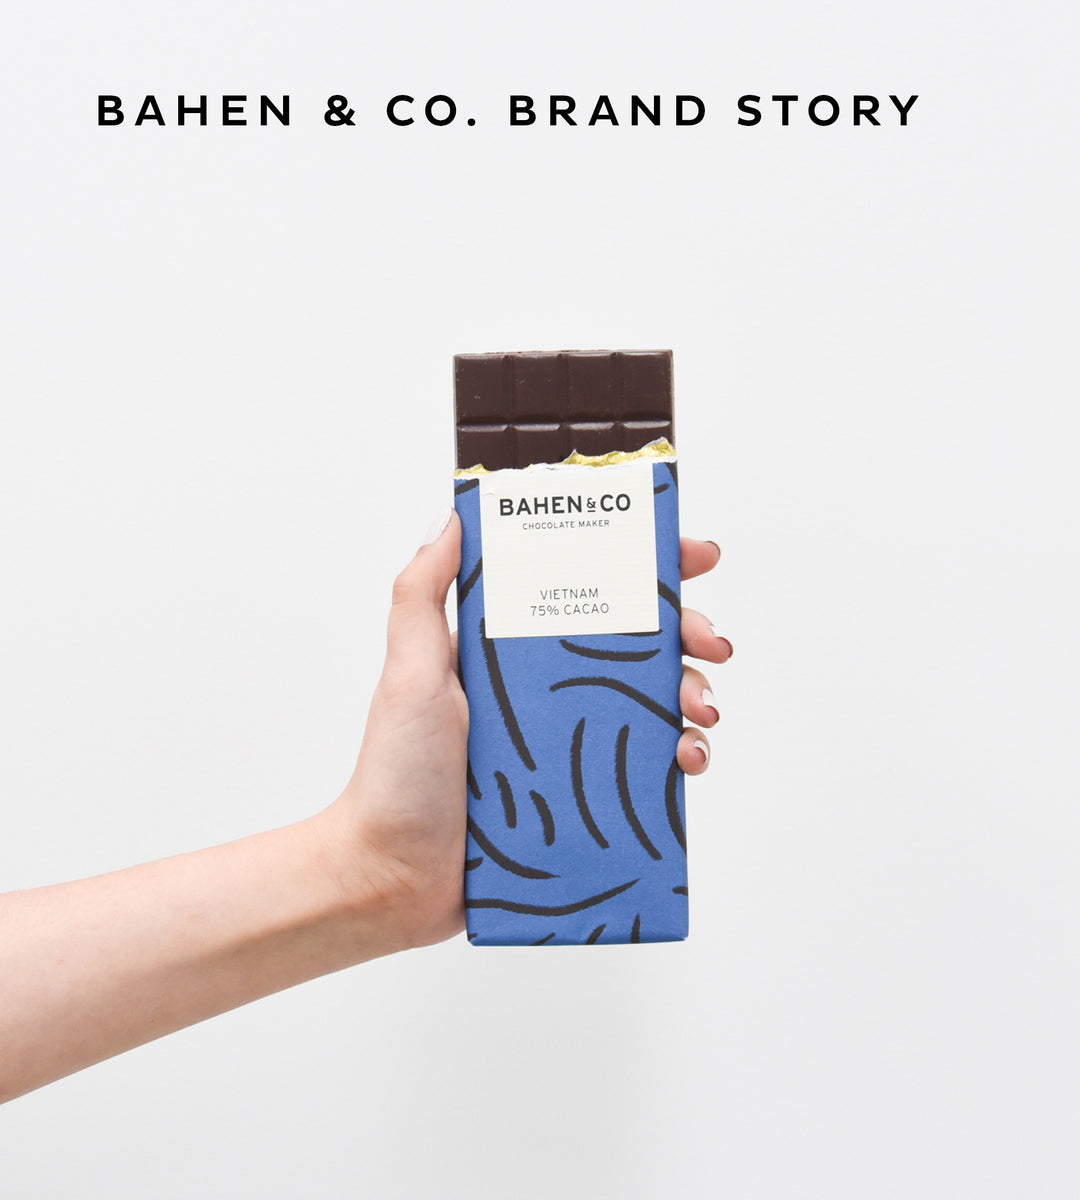 Bahen & Co. Brand Story